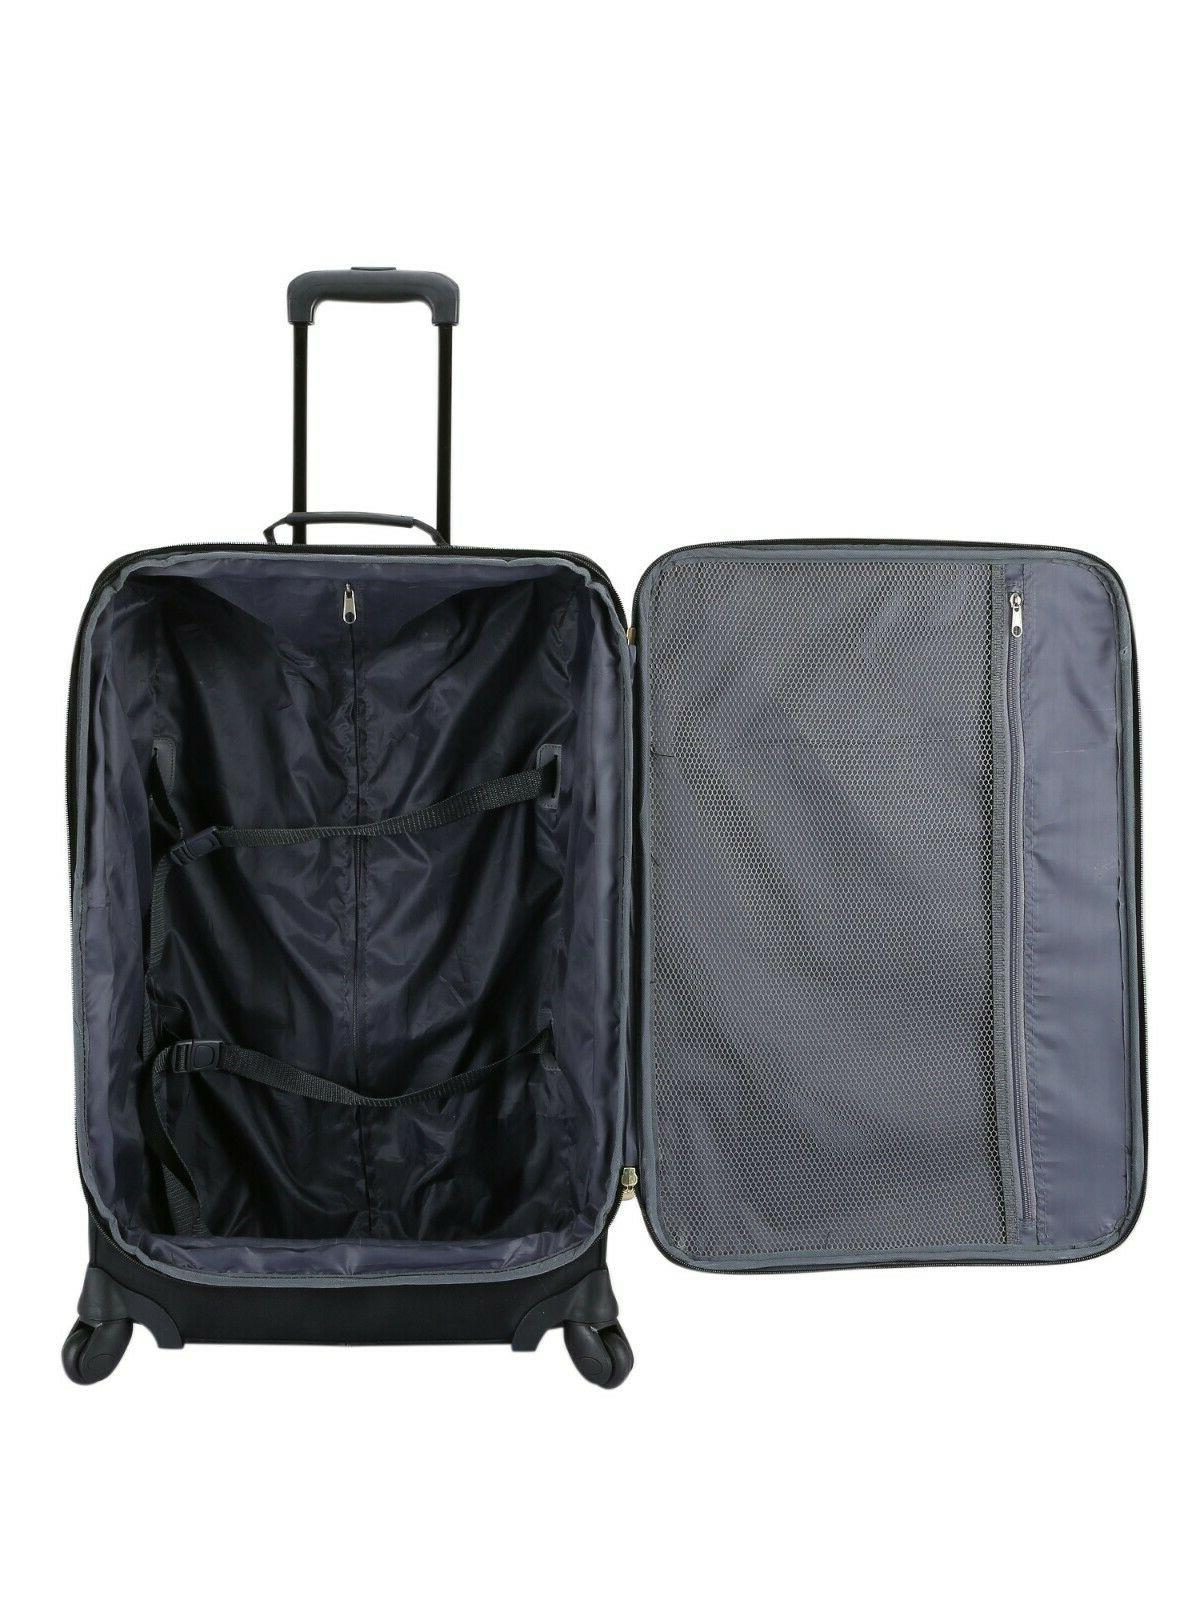 Luggage Set Piece Expandable Top Quality- 21 and 25 inch